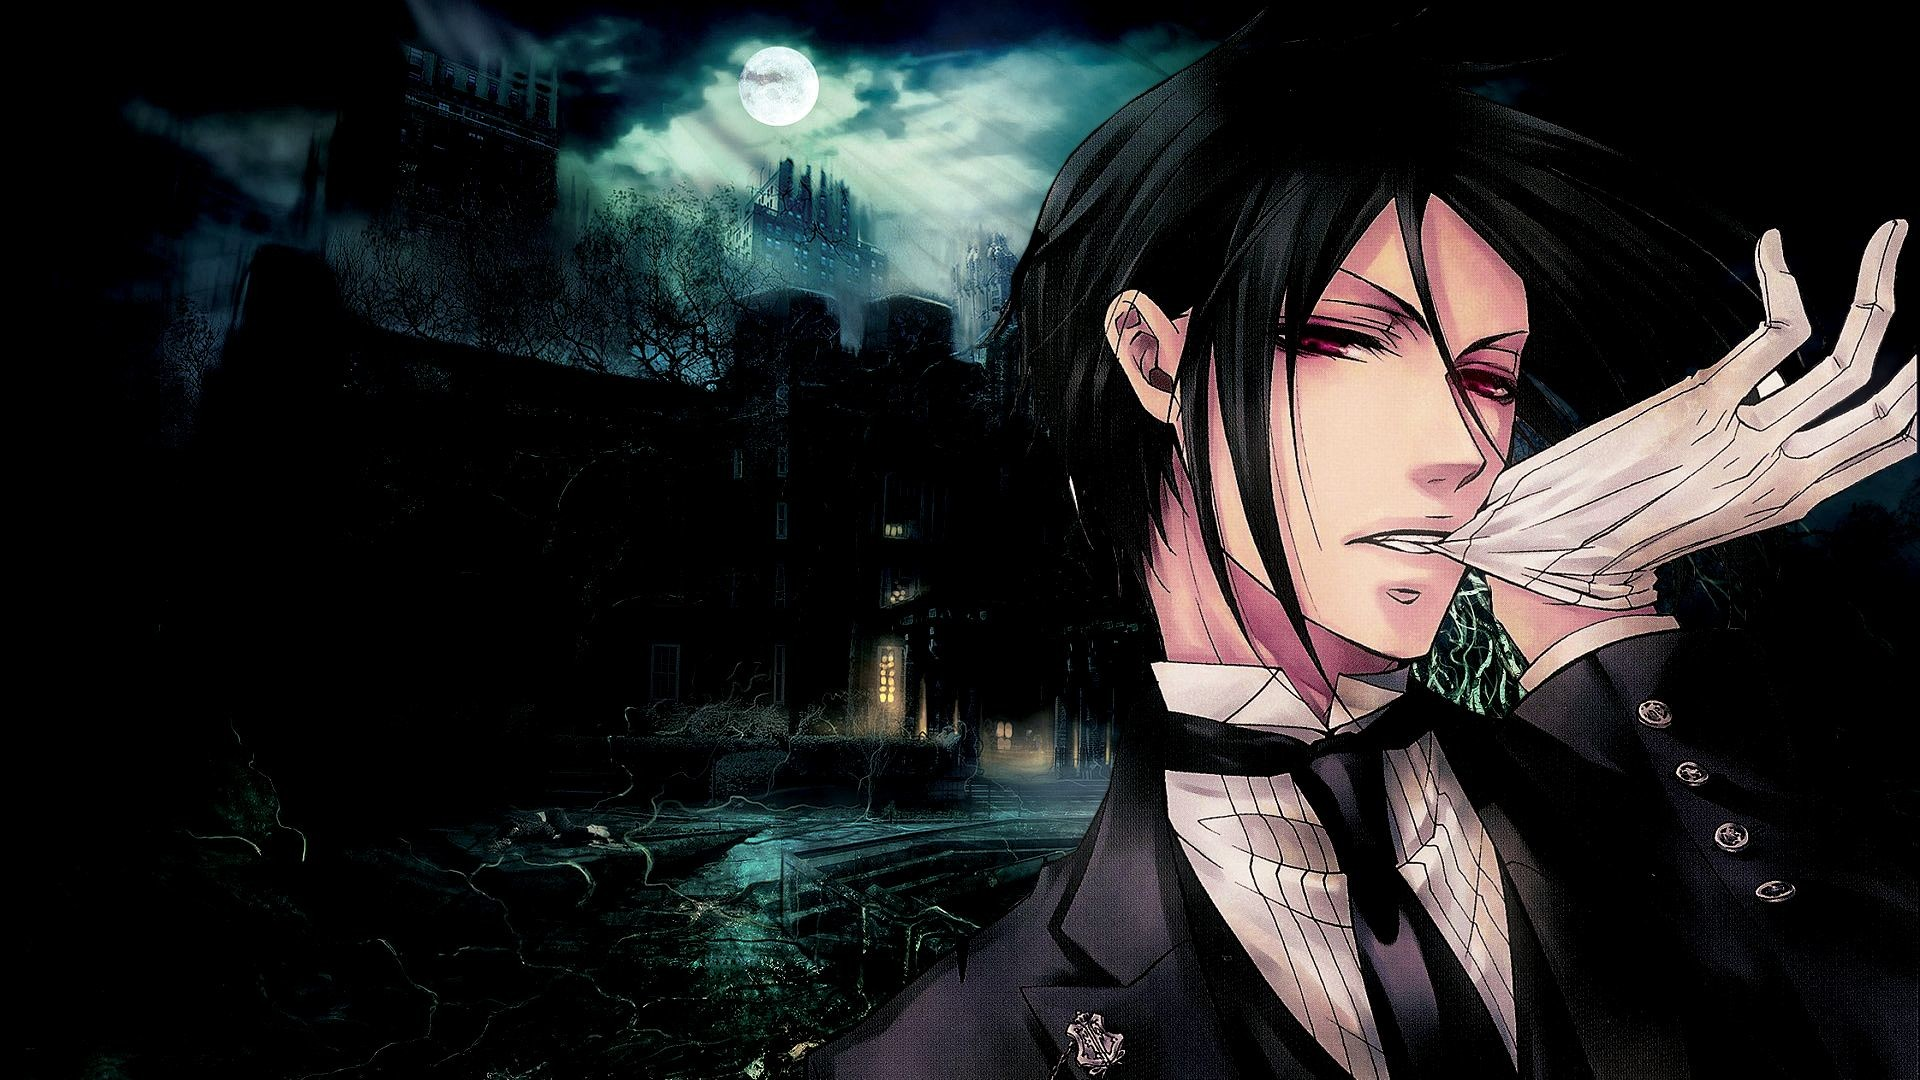 Res: 1920x1080, Black butler sebastian michaelis wallpapers HD.